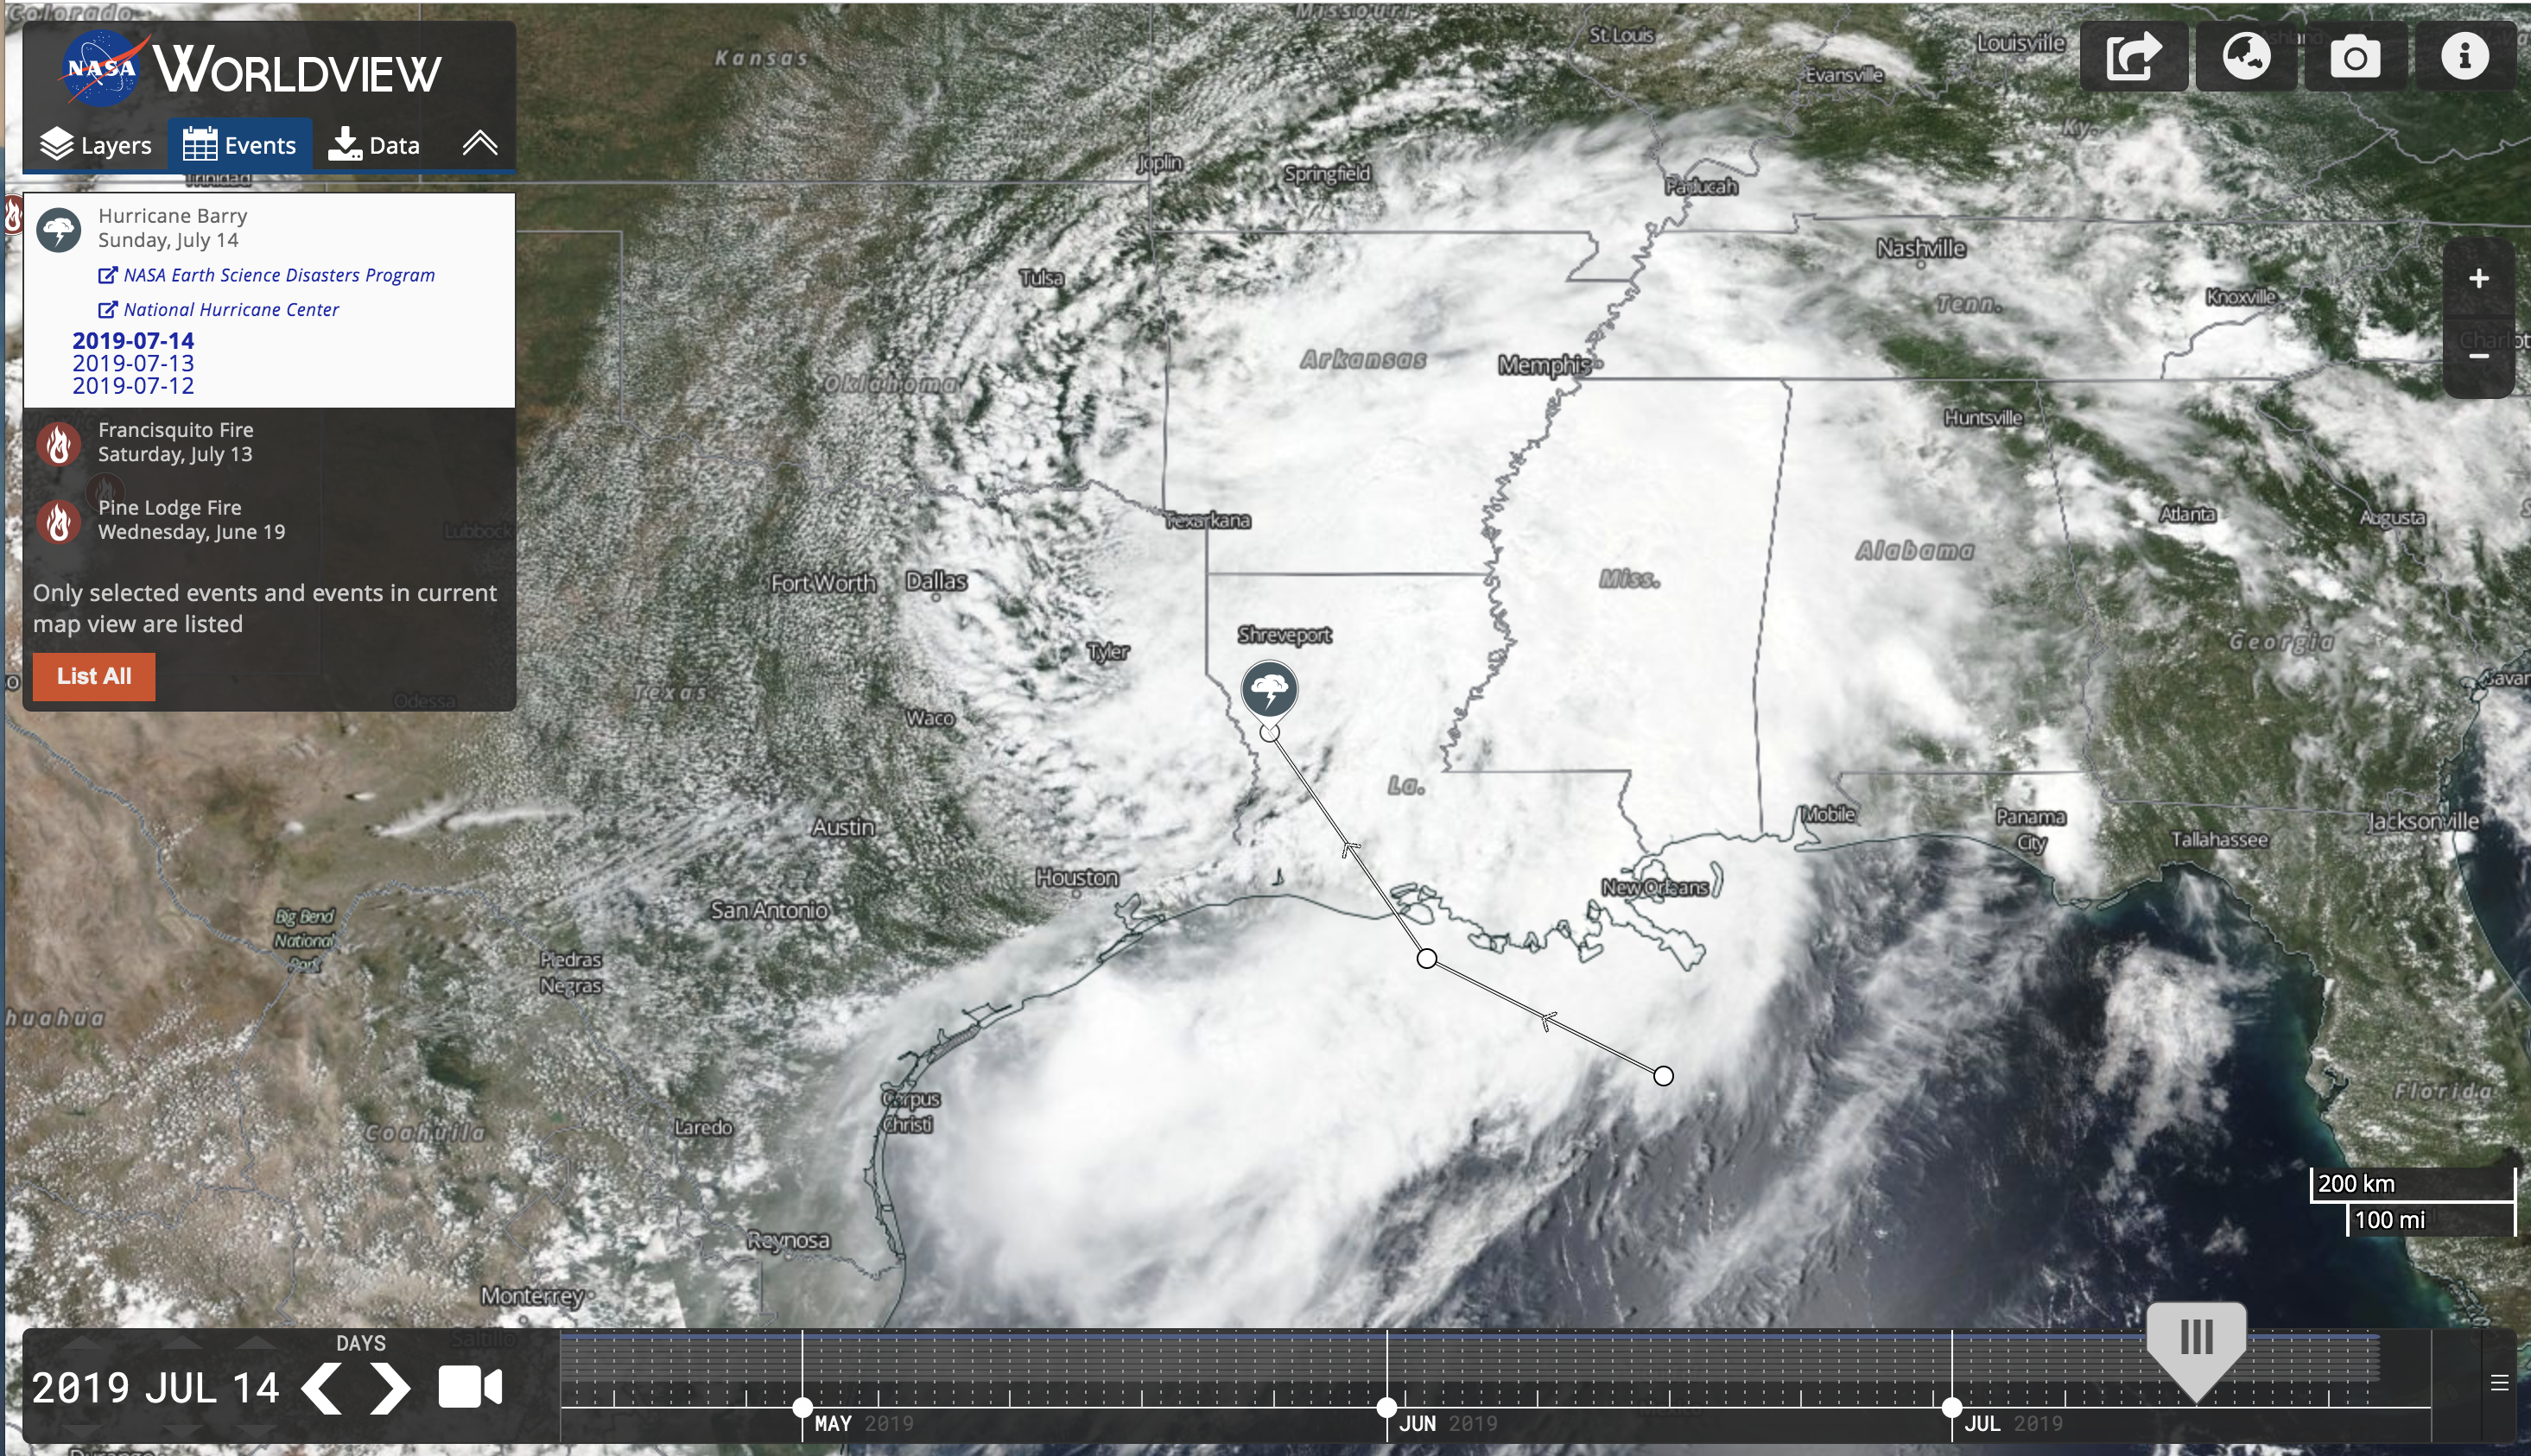 Worldview's Events tab provides information about events, such as tropical cyclones, wildfires, volcanic eruptions, and even large iceberg movement. Hurricane Barry, as shown in this image, traveled from the Gulf into Louisiana in July 2019.